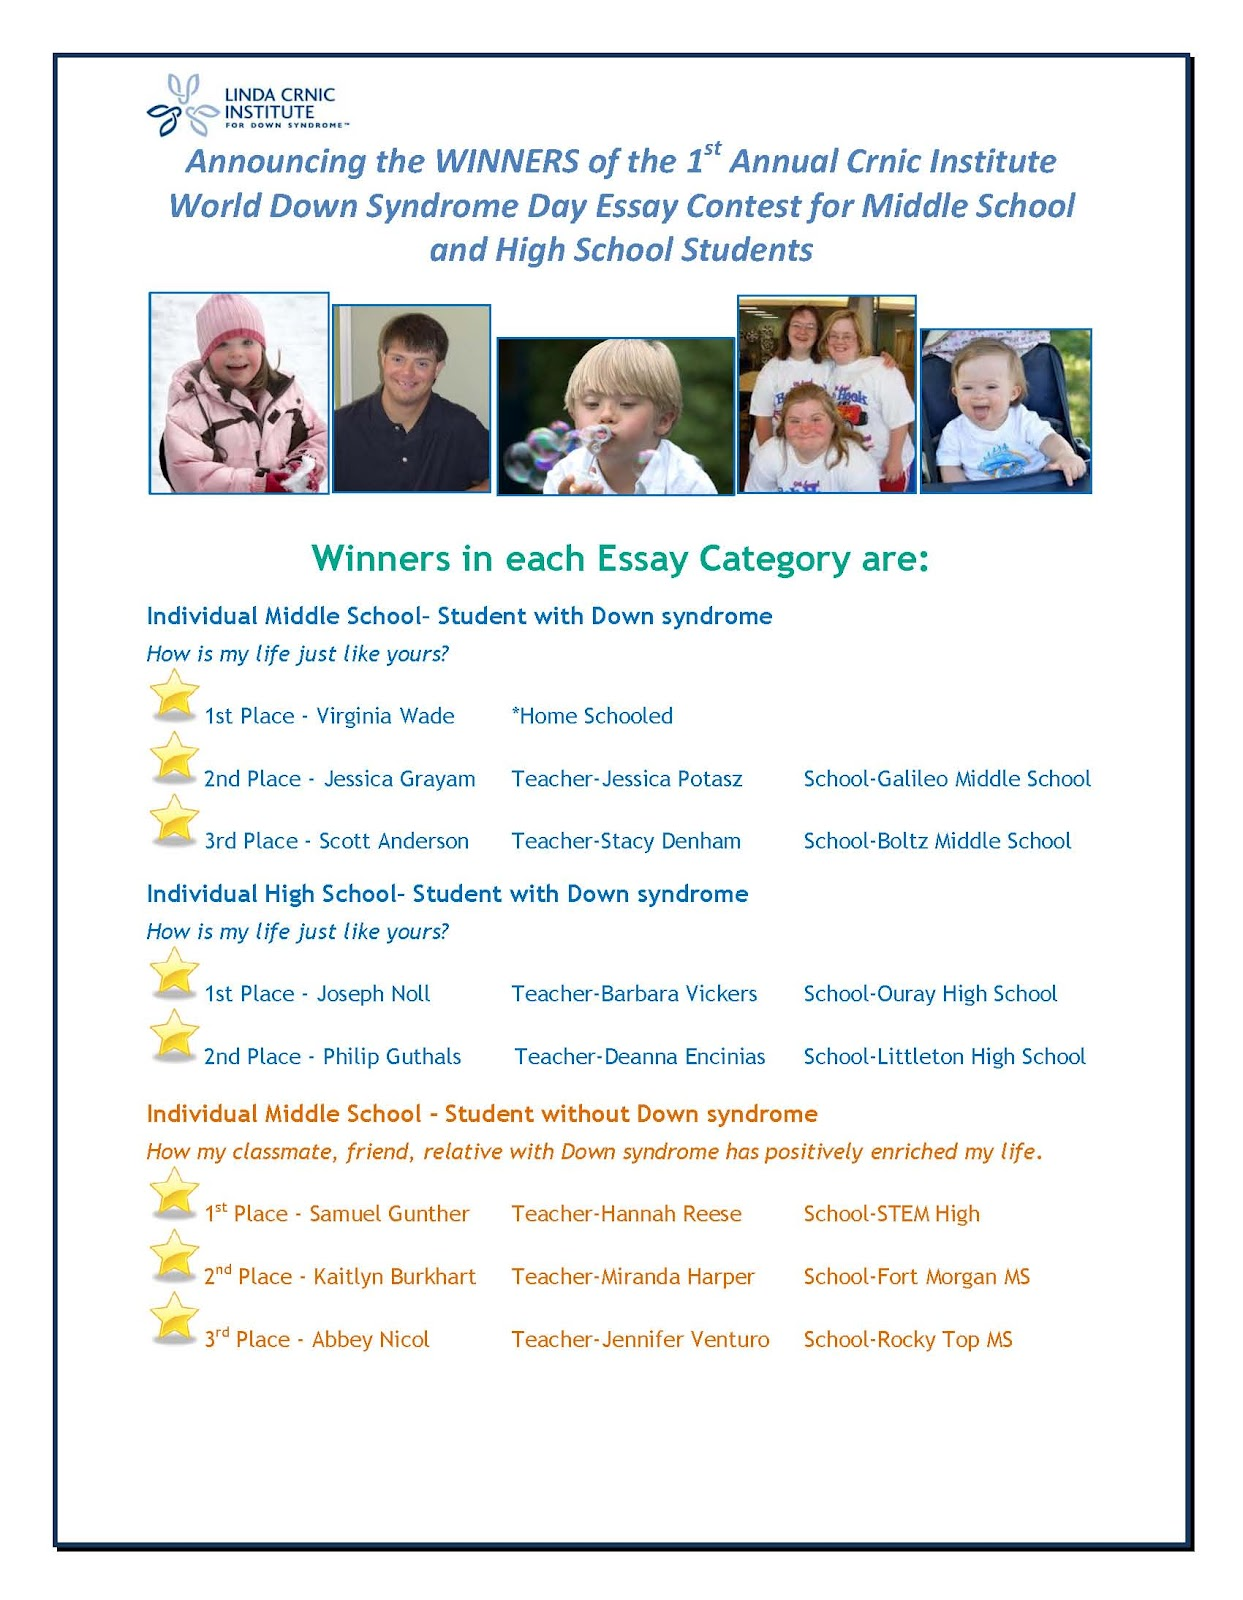 global down syndrome foundation first annual crnic institute world down syndrome day essay contest for middle school and high school students winners